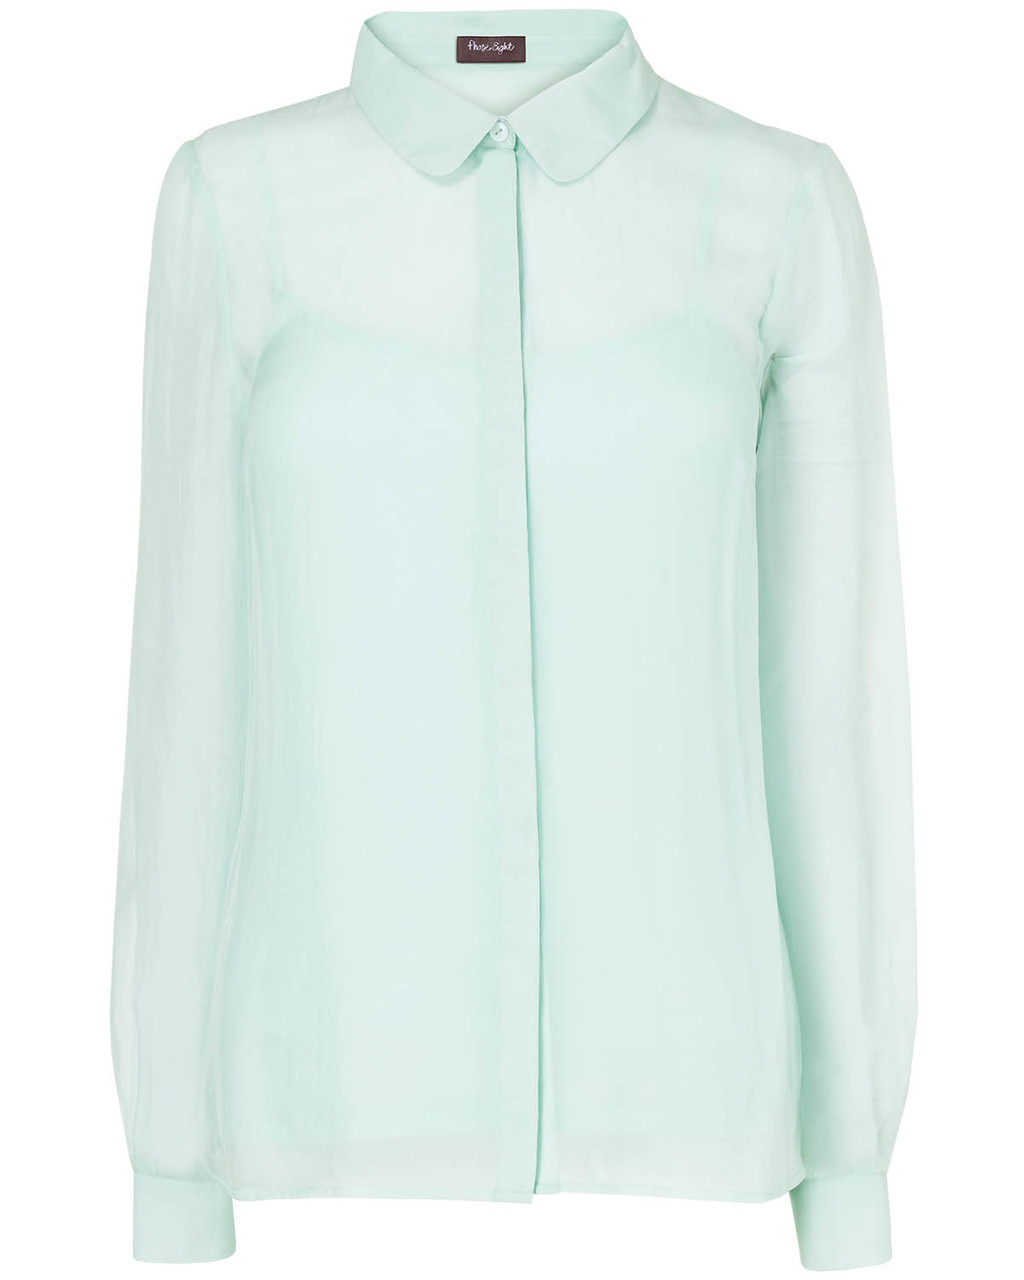 Chiara Silk Blouse - neckline: shirt collar/peter pan/zip with opening; pattern: plain; length: below the bottom; style: blouse; predominant colour: mint green; occasions: casual, work; fibres: silk - 100%; fit: straight cut; sleeve length: long sleeve; sleeve style: standard; texture group: silky - light; season: s/s 2014